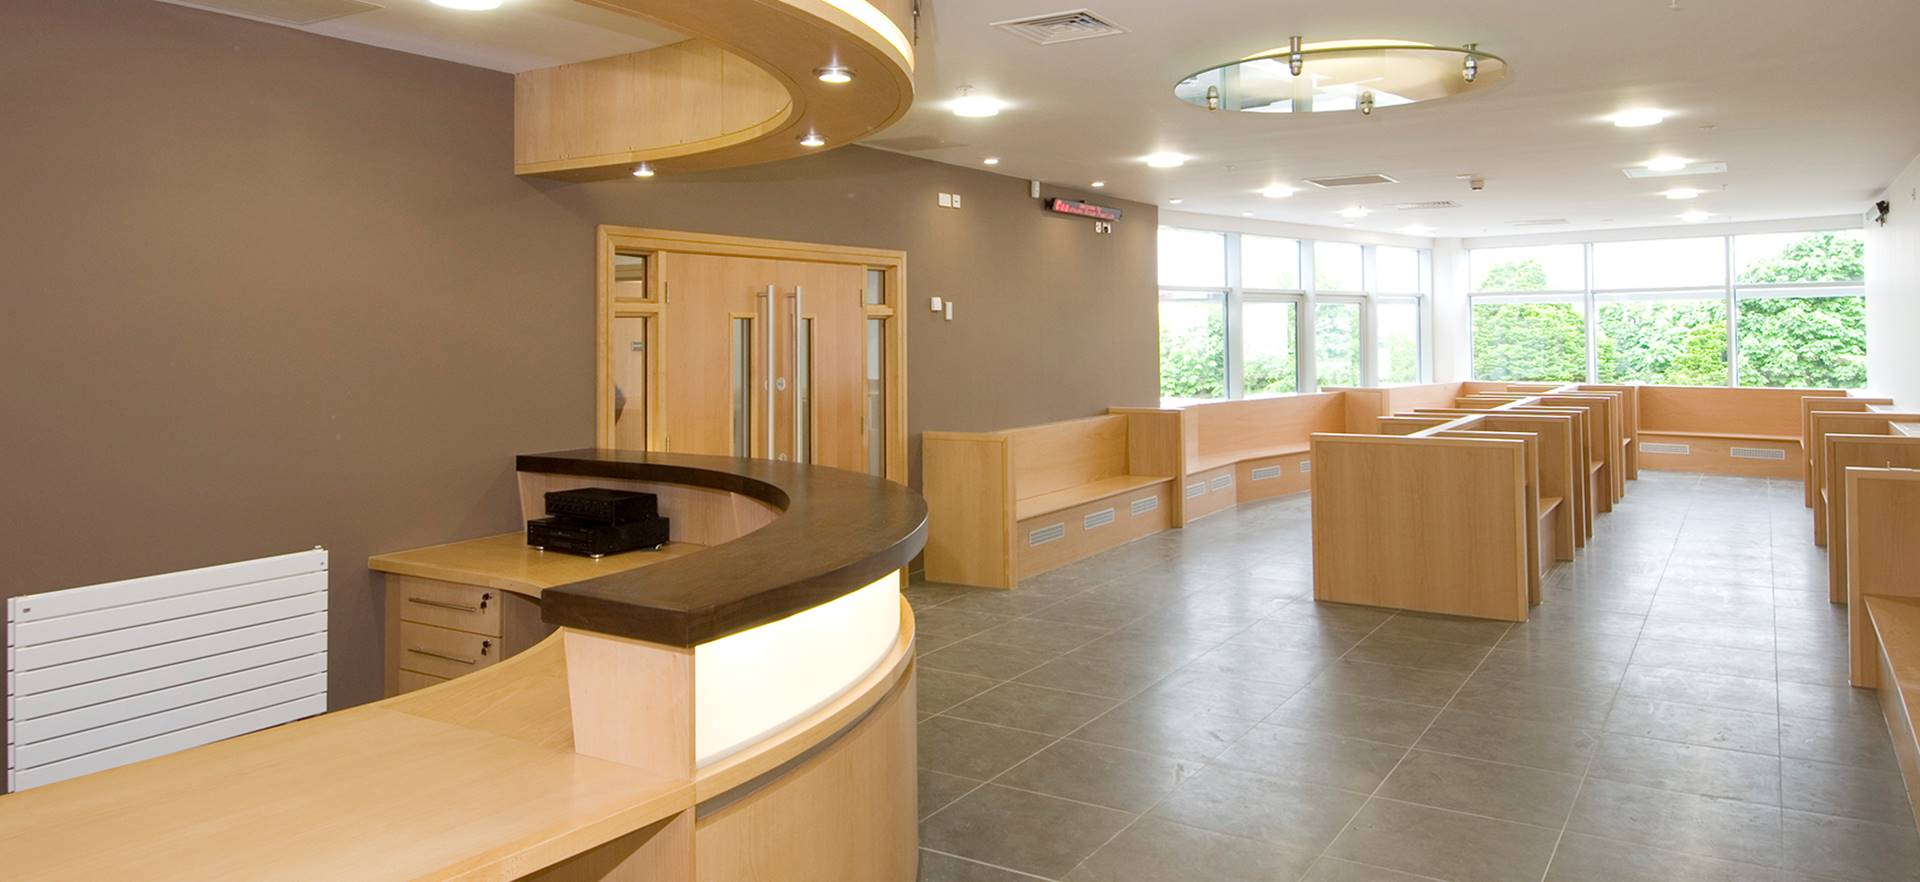 Abbeycentre Surgery, Newtownabbey